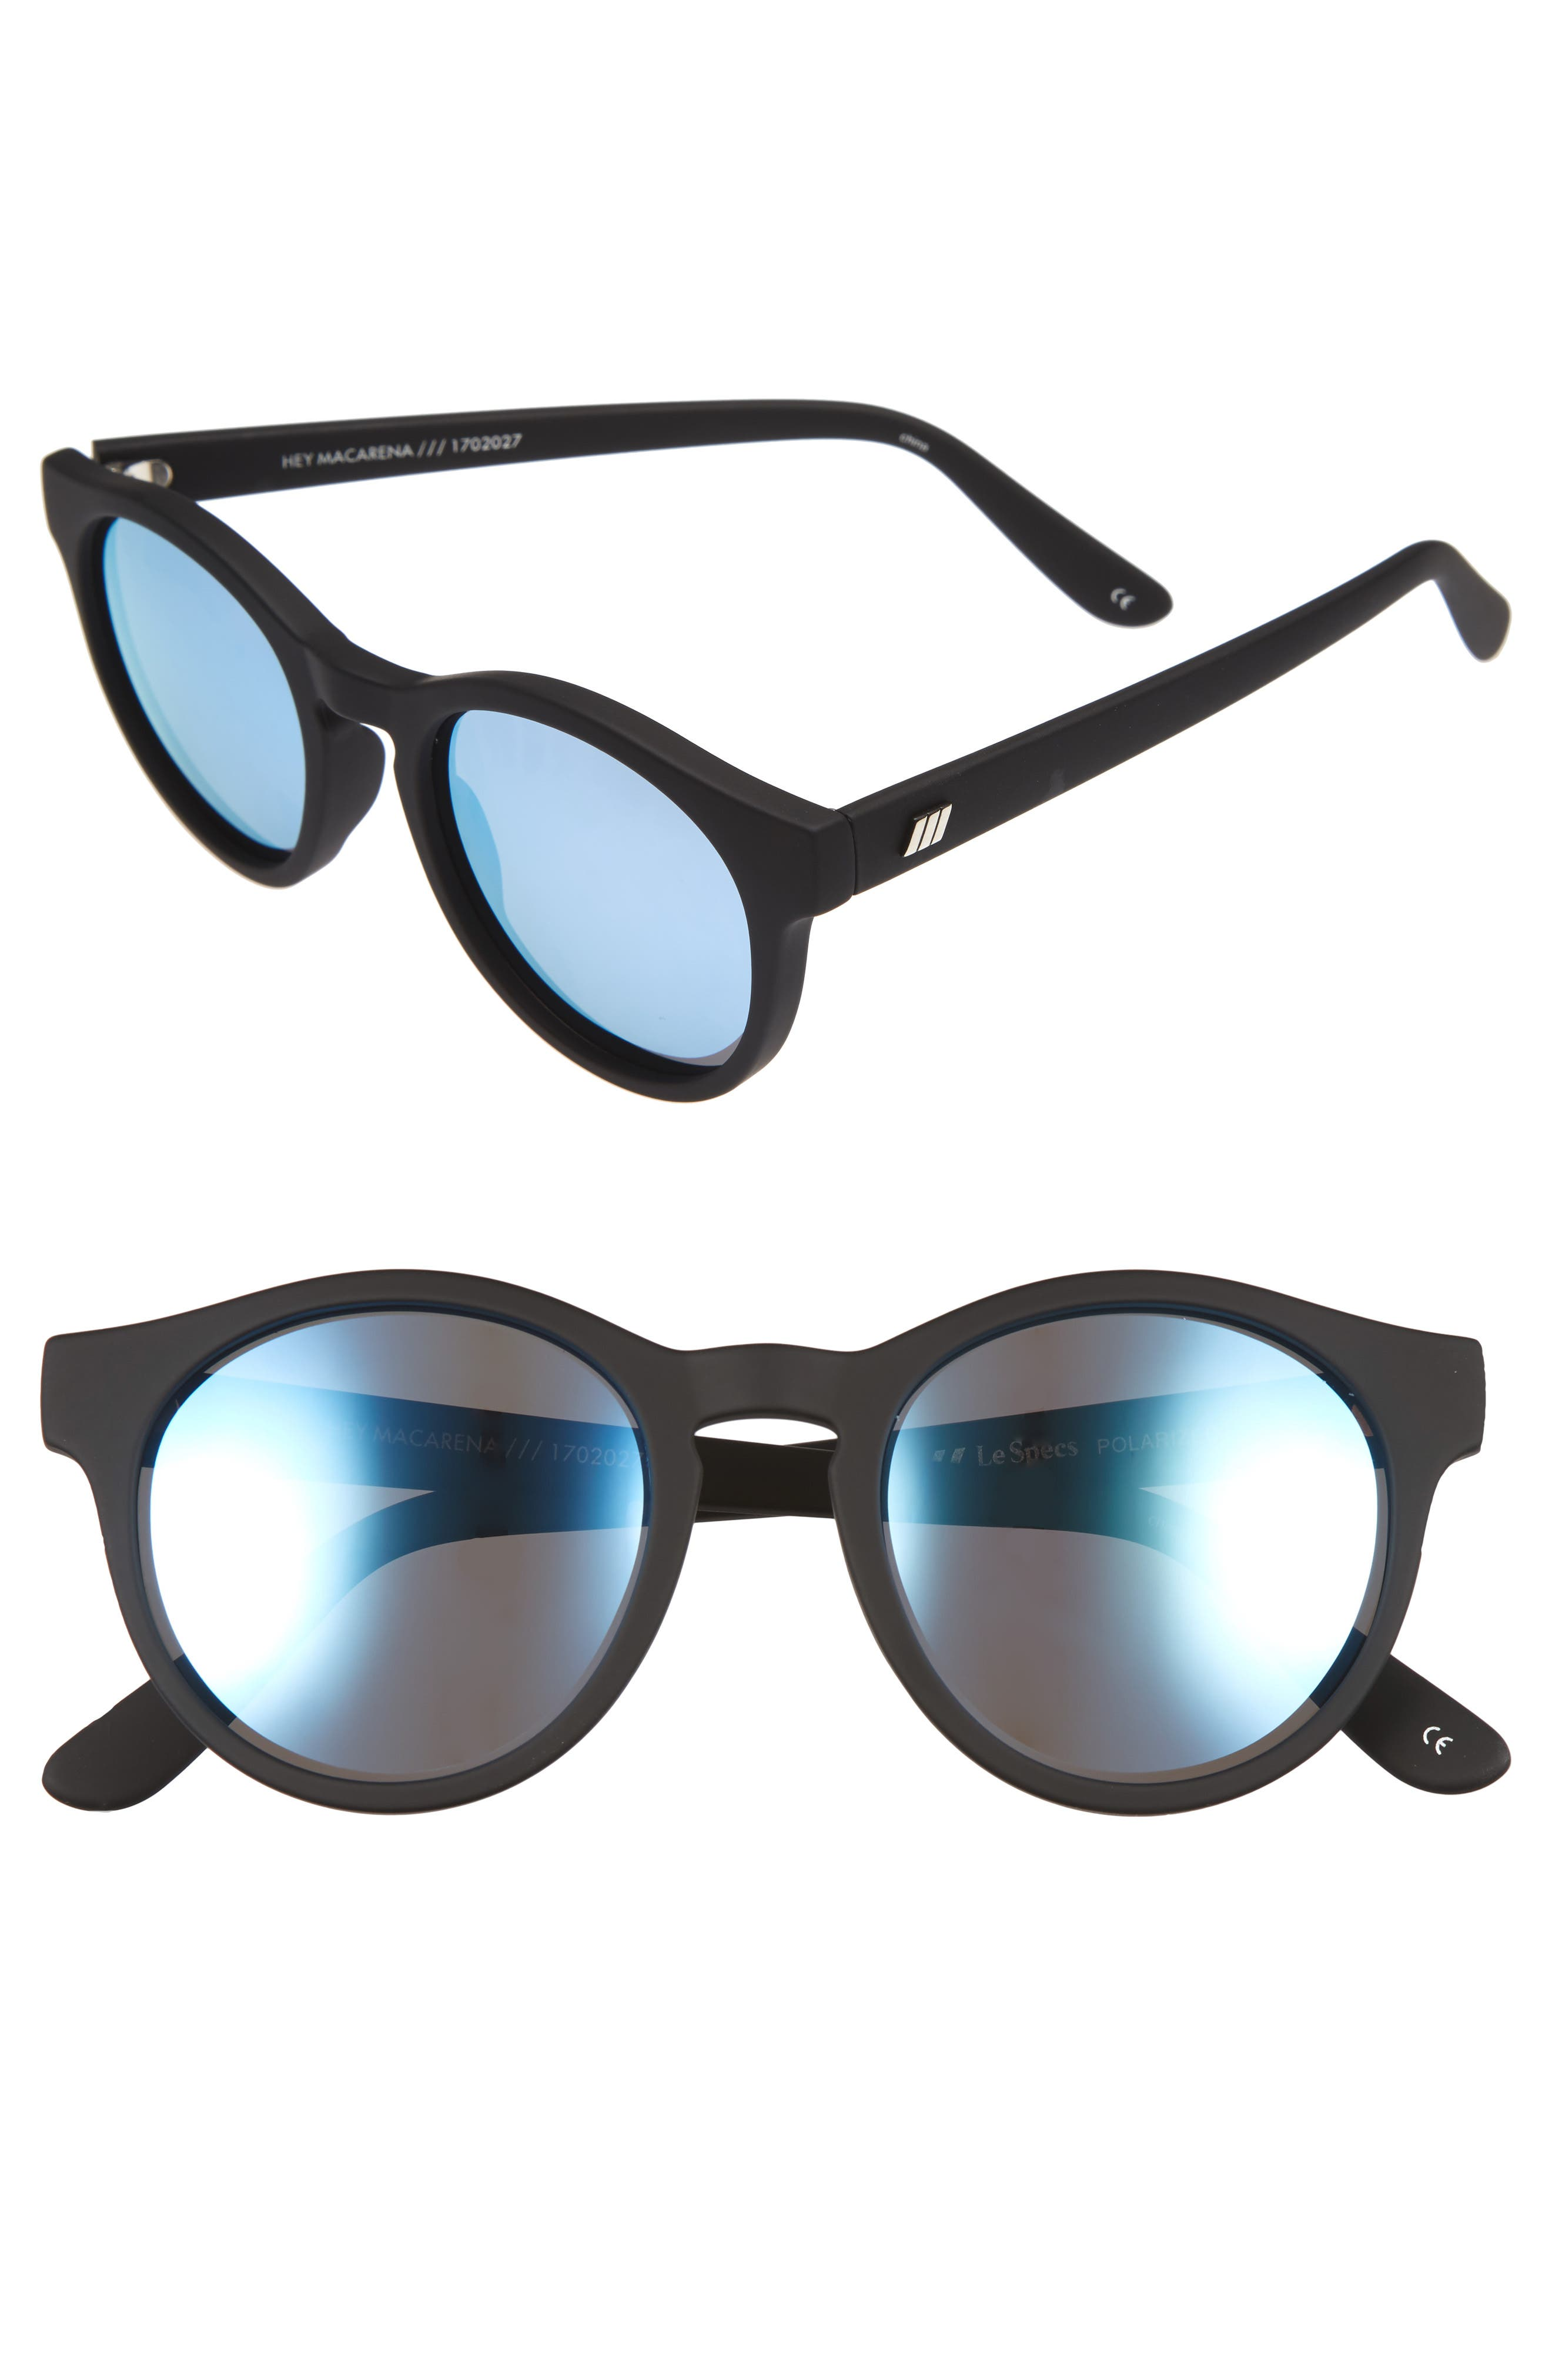 Alternate Image 1 Selected - Le Specs Hey Macarena 51mm Polarized Retro Sunglasses